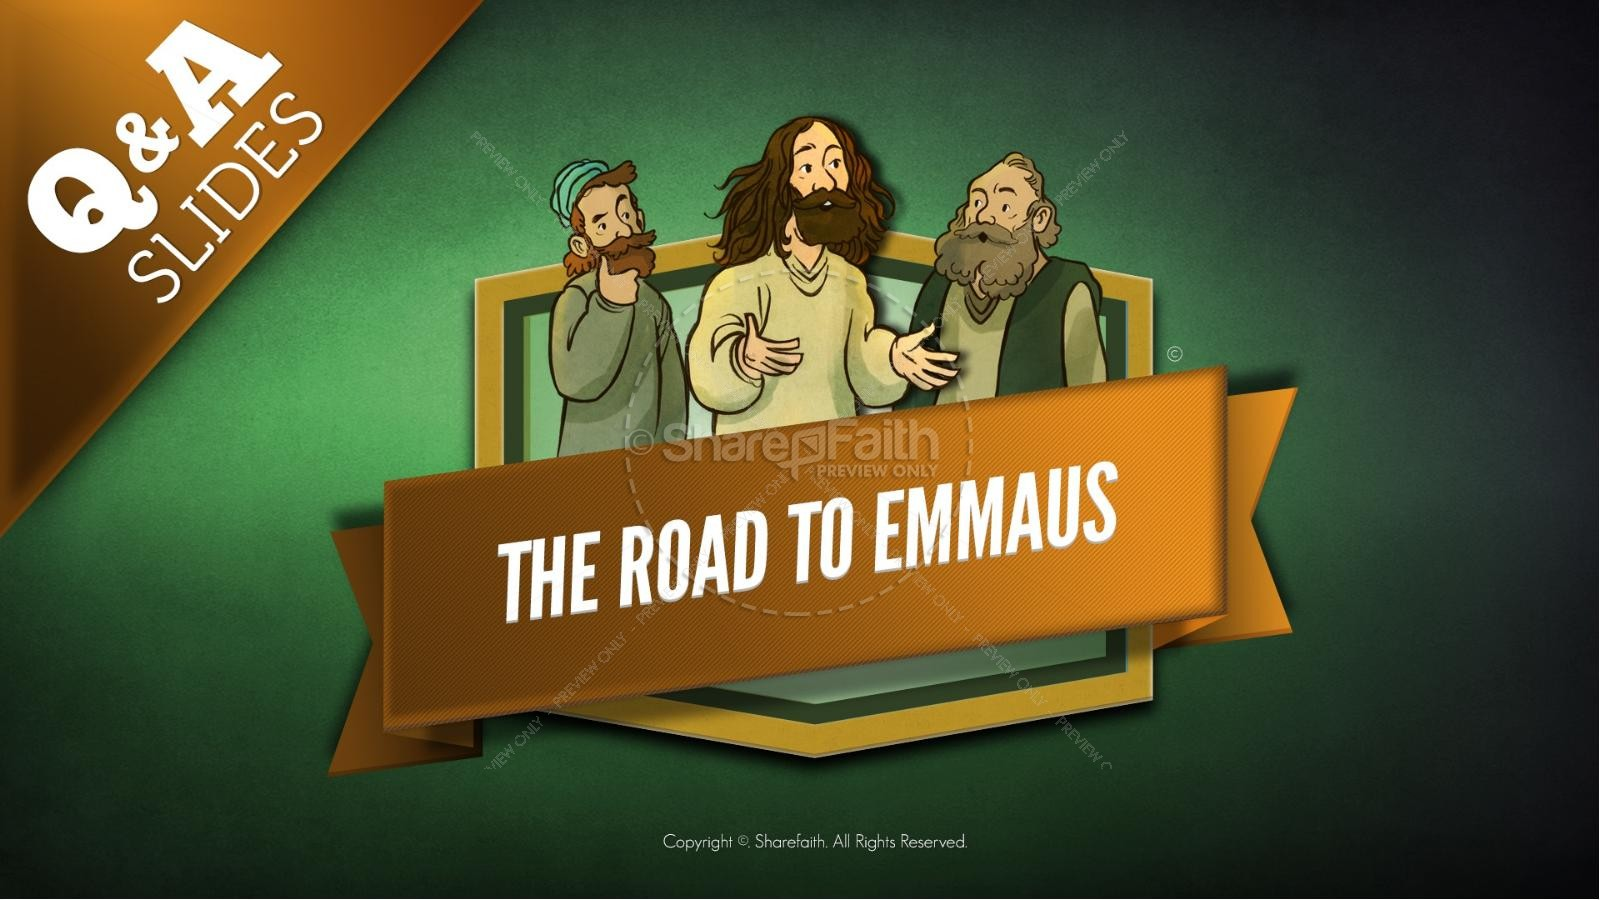 Luke 24 Road to Emmaus Kids Bible Stories